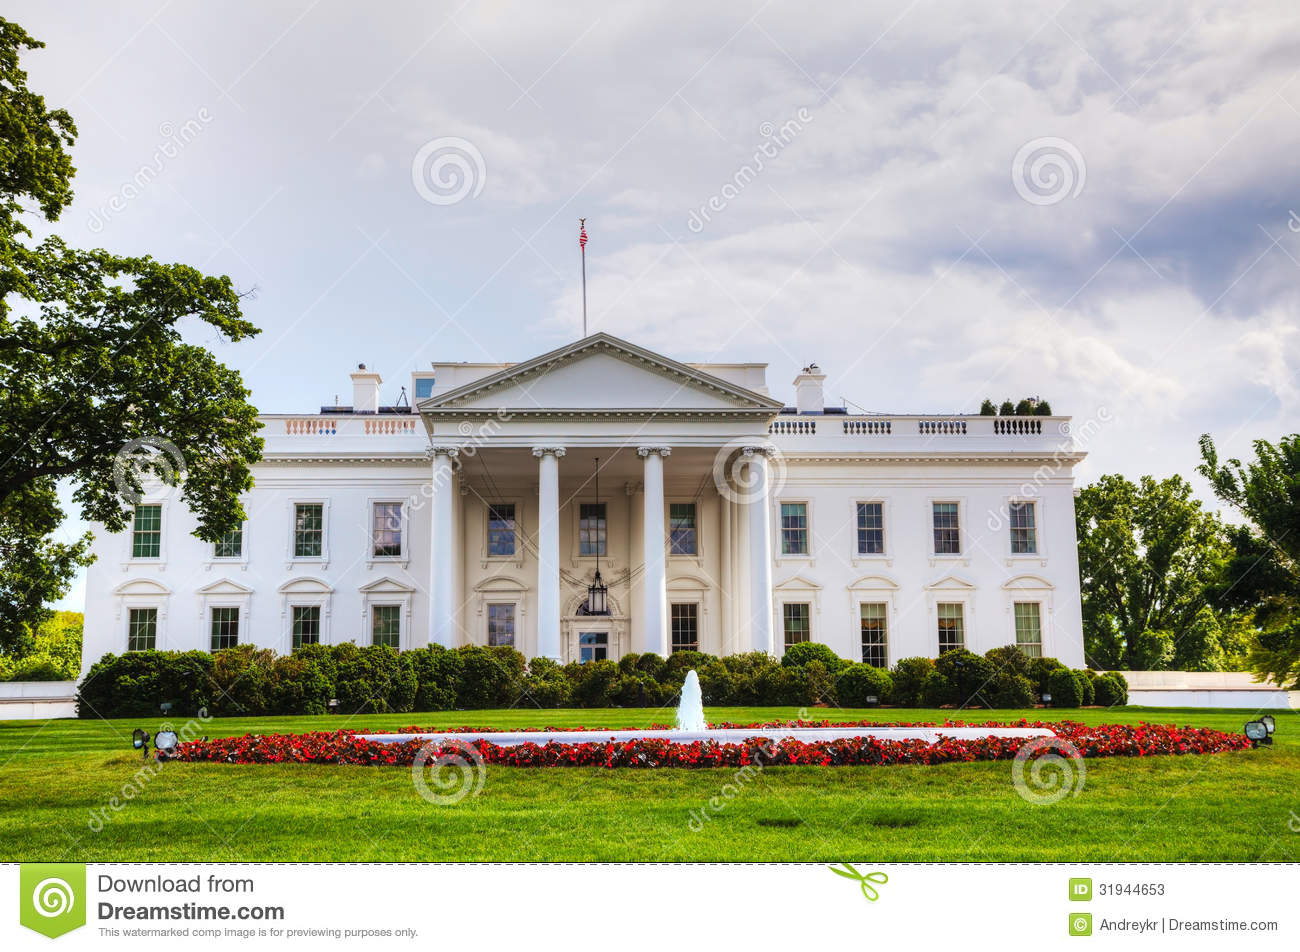 The White House Building In Washington Dc Stock Photos